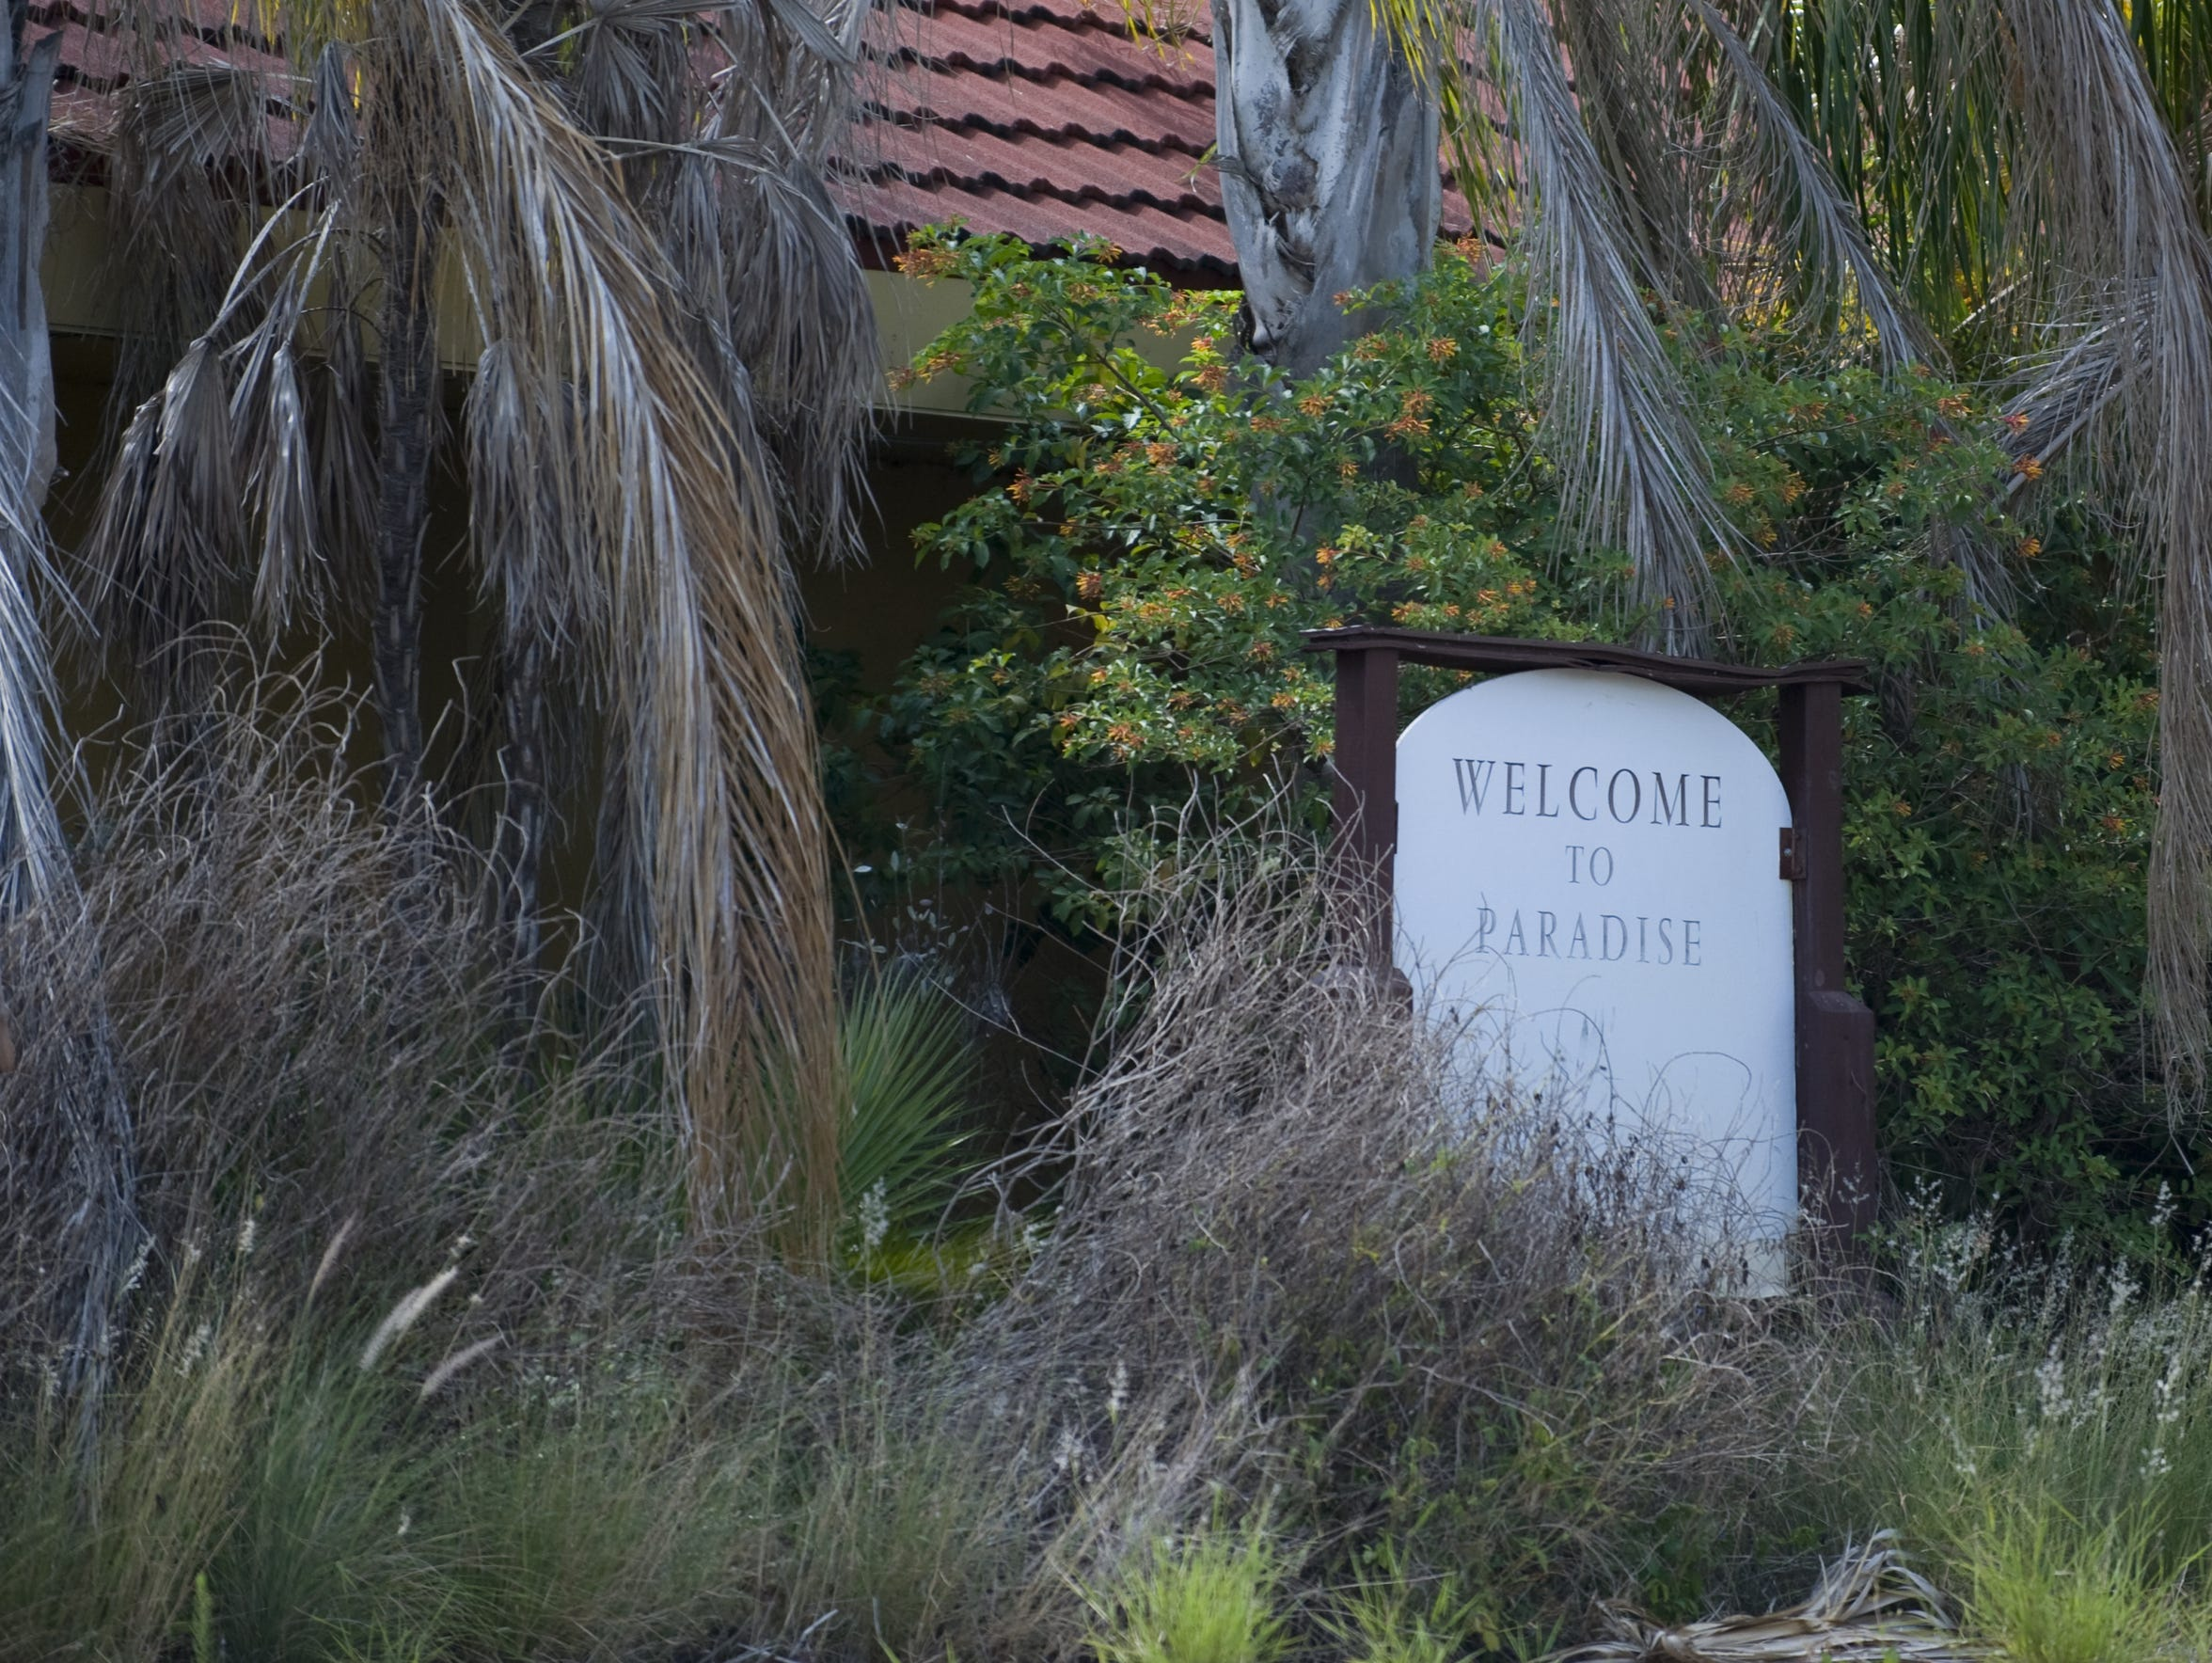 In this file photo, the welcome sign in front of the